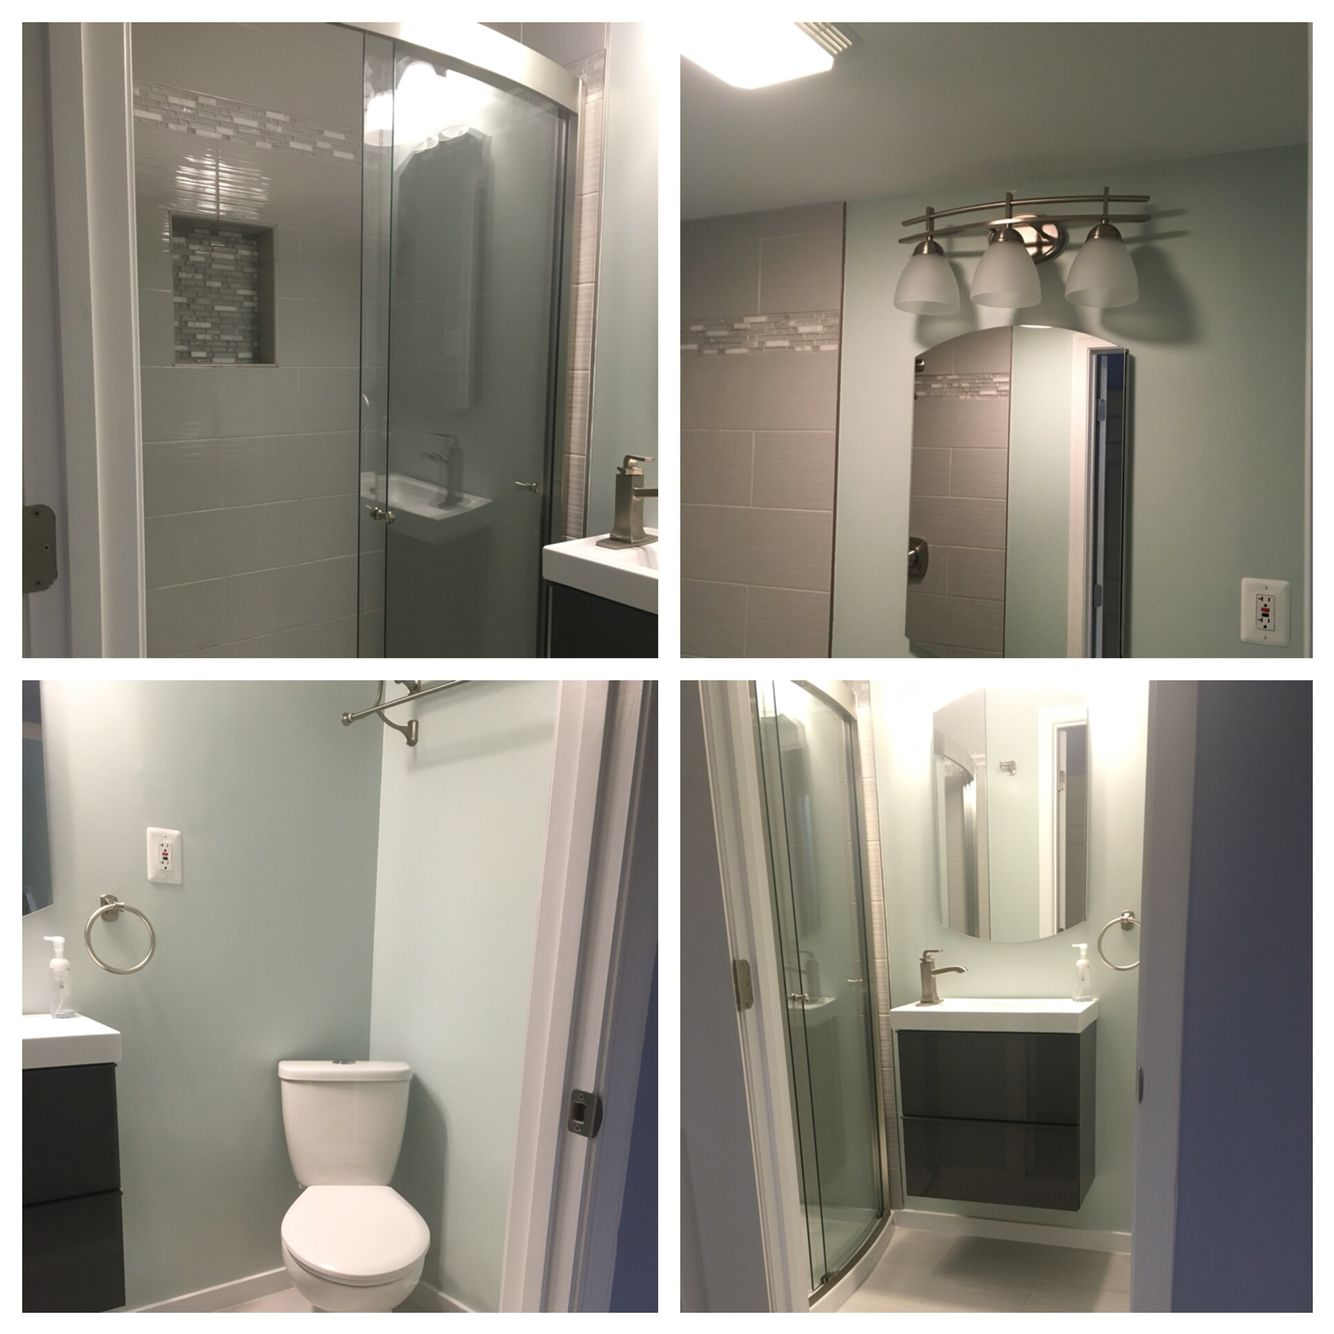 Cute Apartment Bathroom Love The Color: I Love The New Guest Bathroom! Paint Color Is Behr Serene Journey.